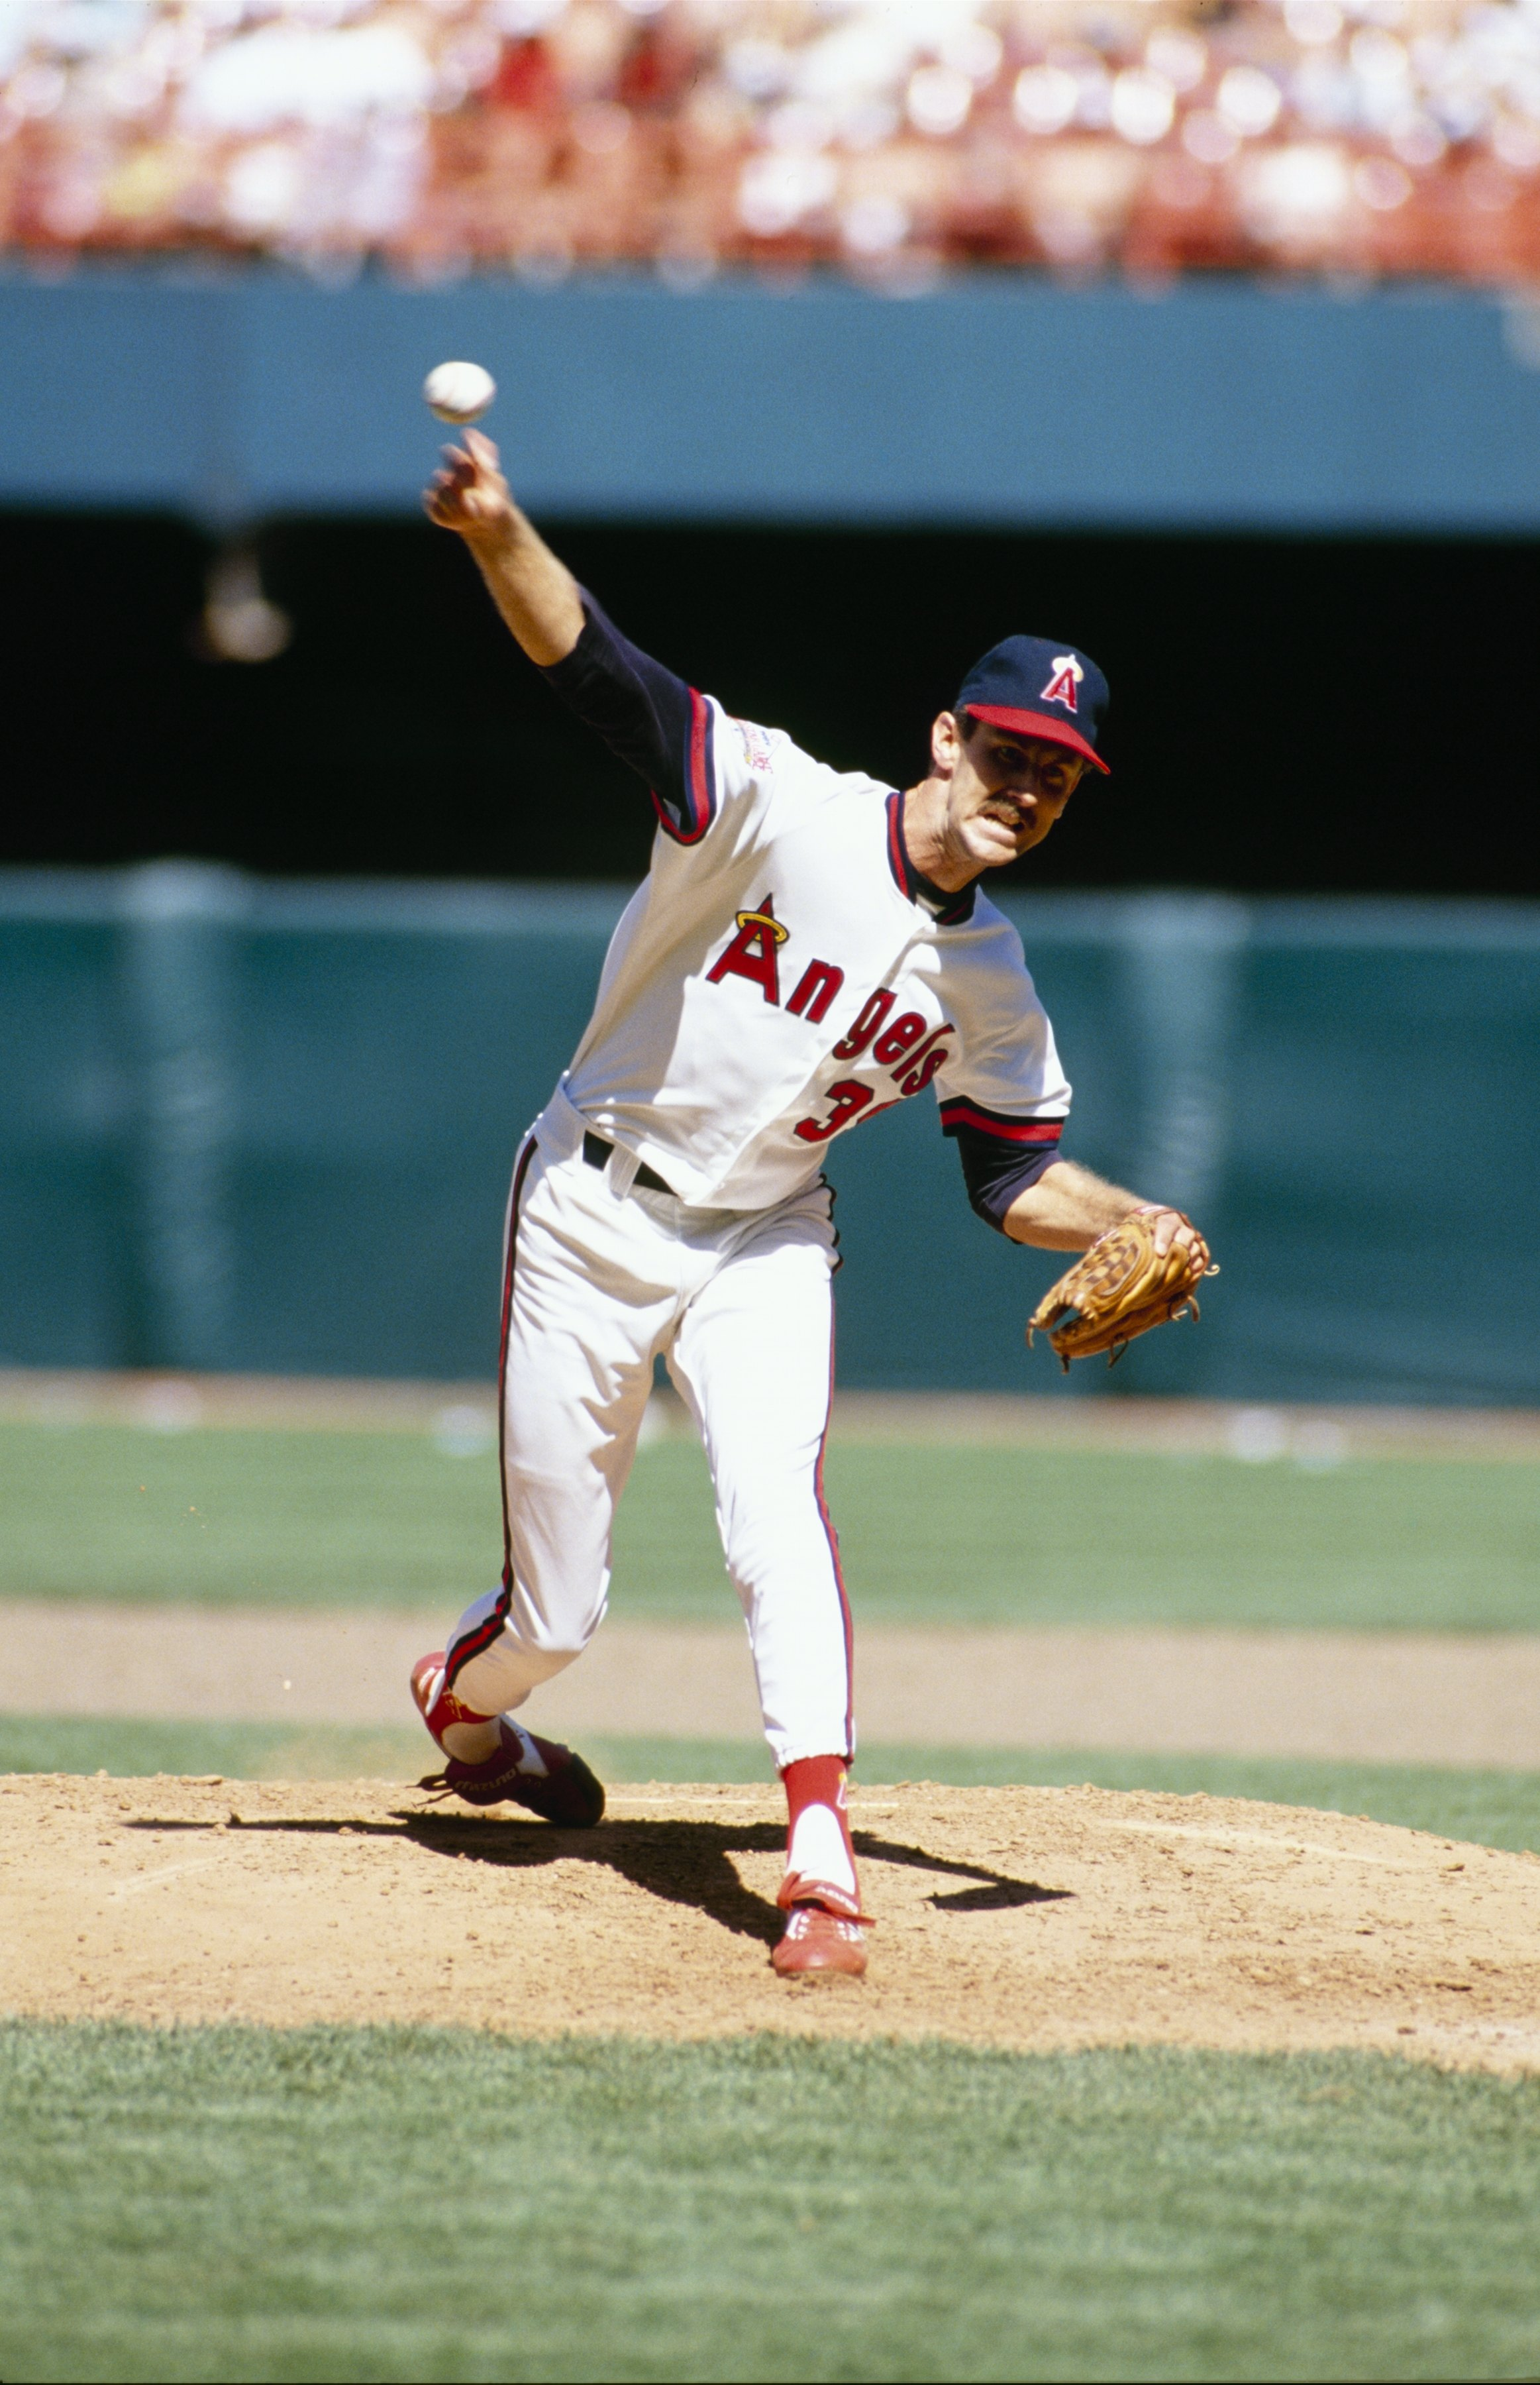 ANAHEIM, CA - 1989:  Mike Witt of the California Angels pitches during a game in the 1989 season at Anaheim Stadium in Anaheim, California. (Photo by Tim DeFrisco/Getty Images)